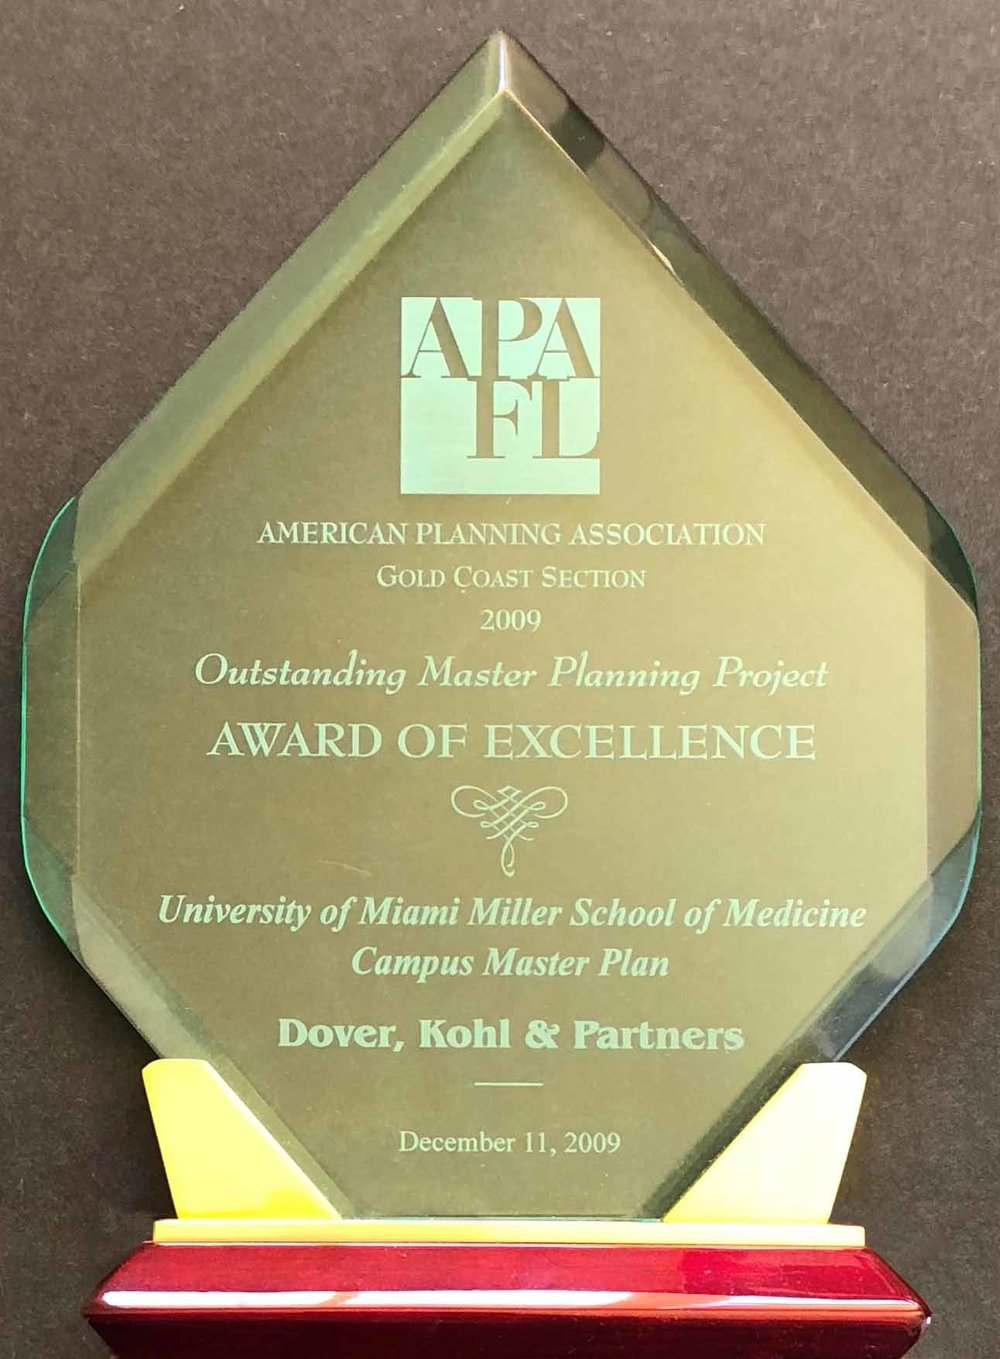 2009-Outstanding Master Planning Project, Award of Excellence for the University of Miami Miller School of Medicine Campus Master Plan.jpg